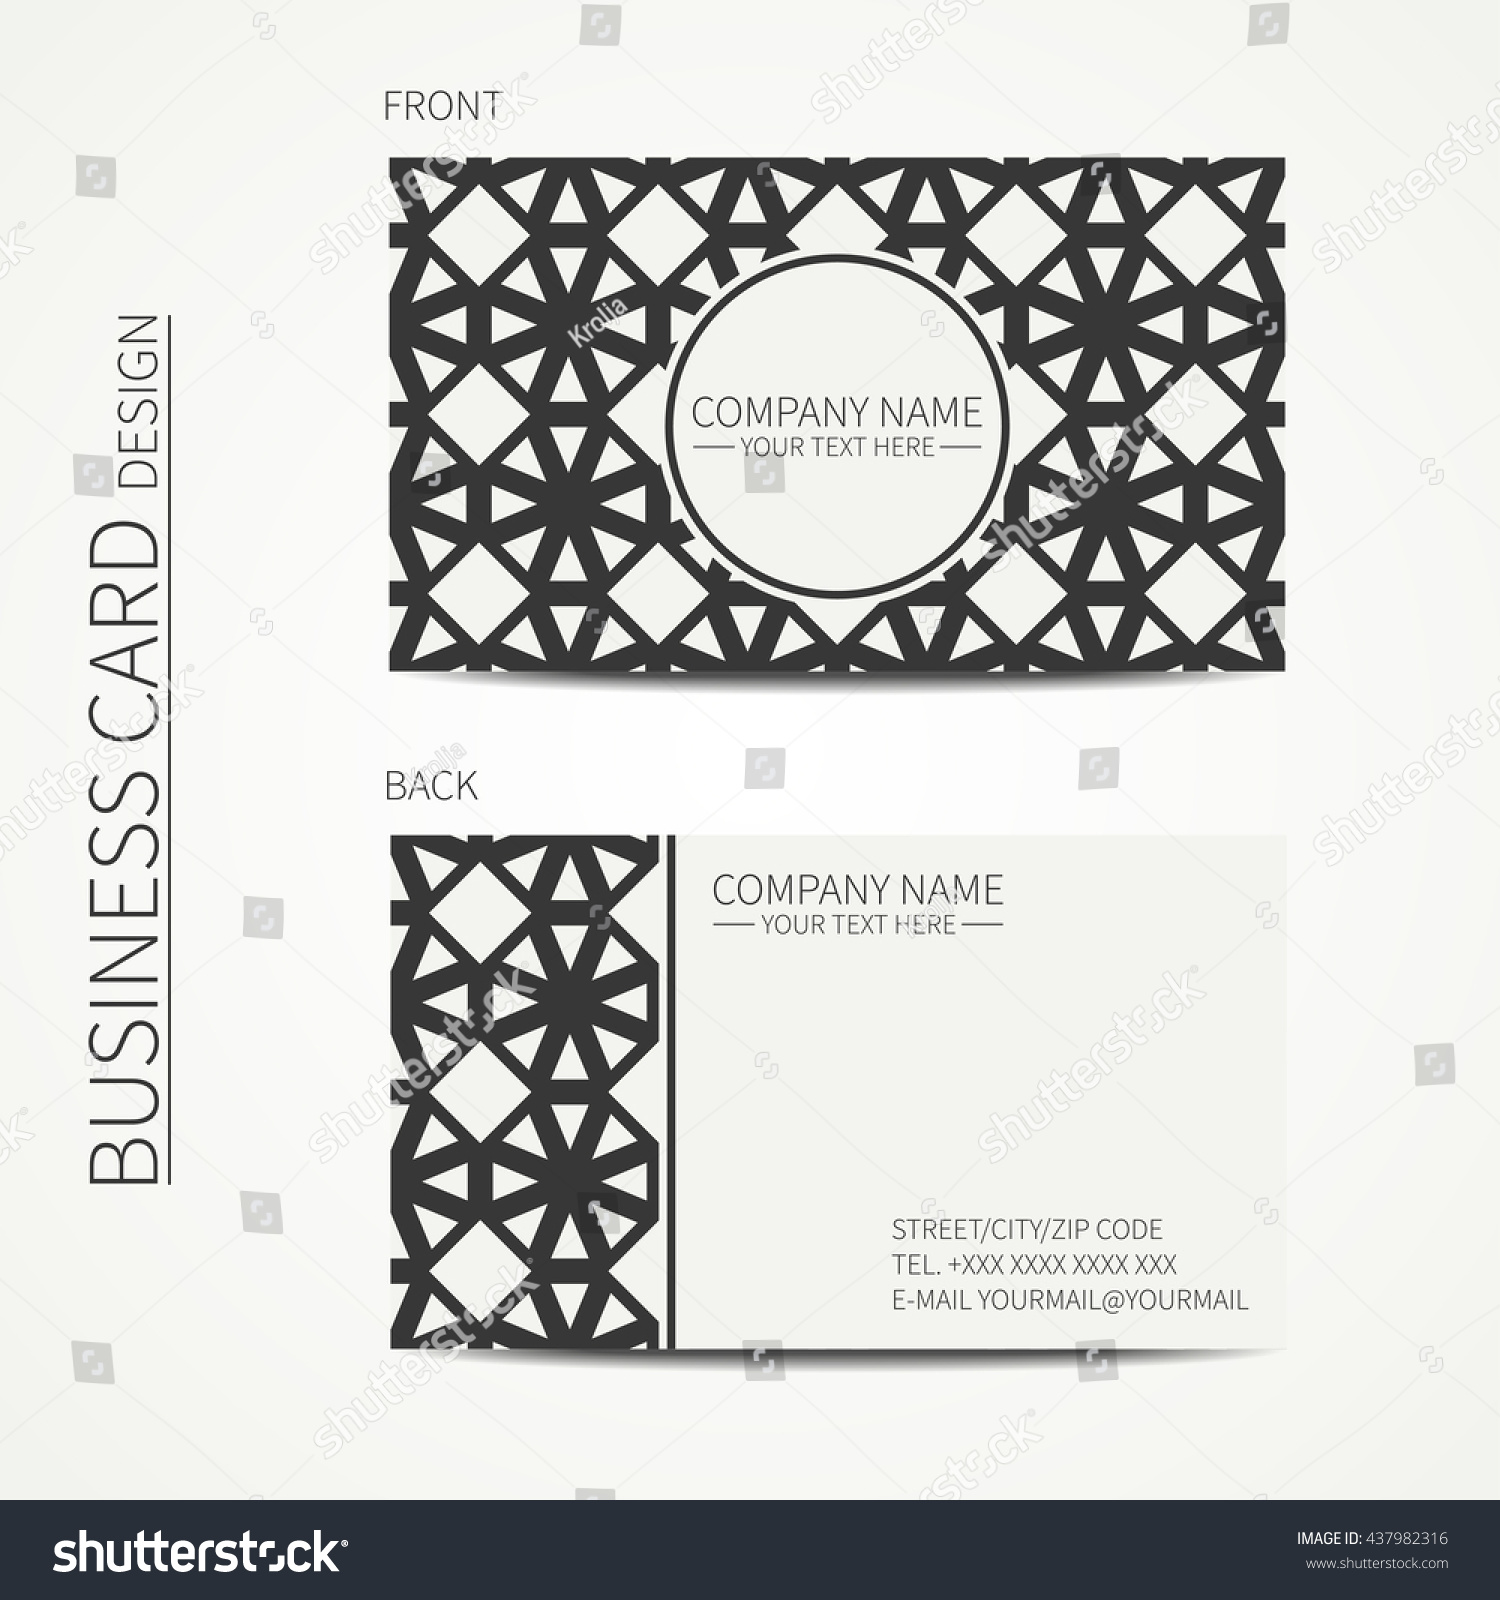 Vector Simple Business Card Design Template Stock Vector (Royalty ...